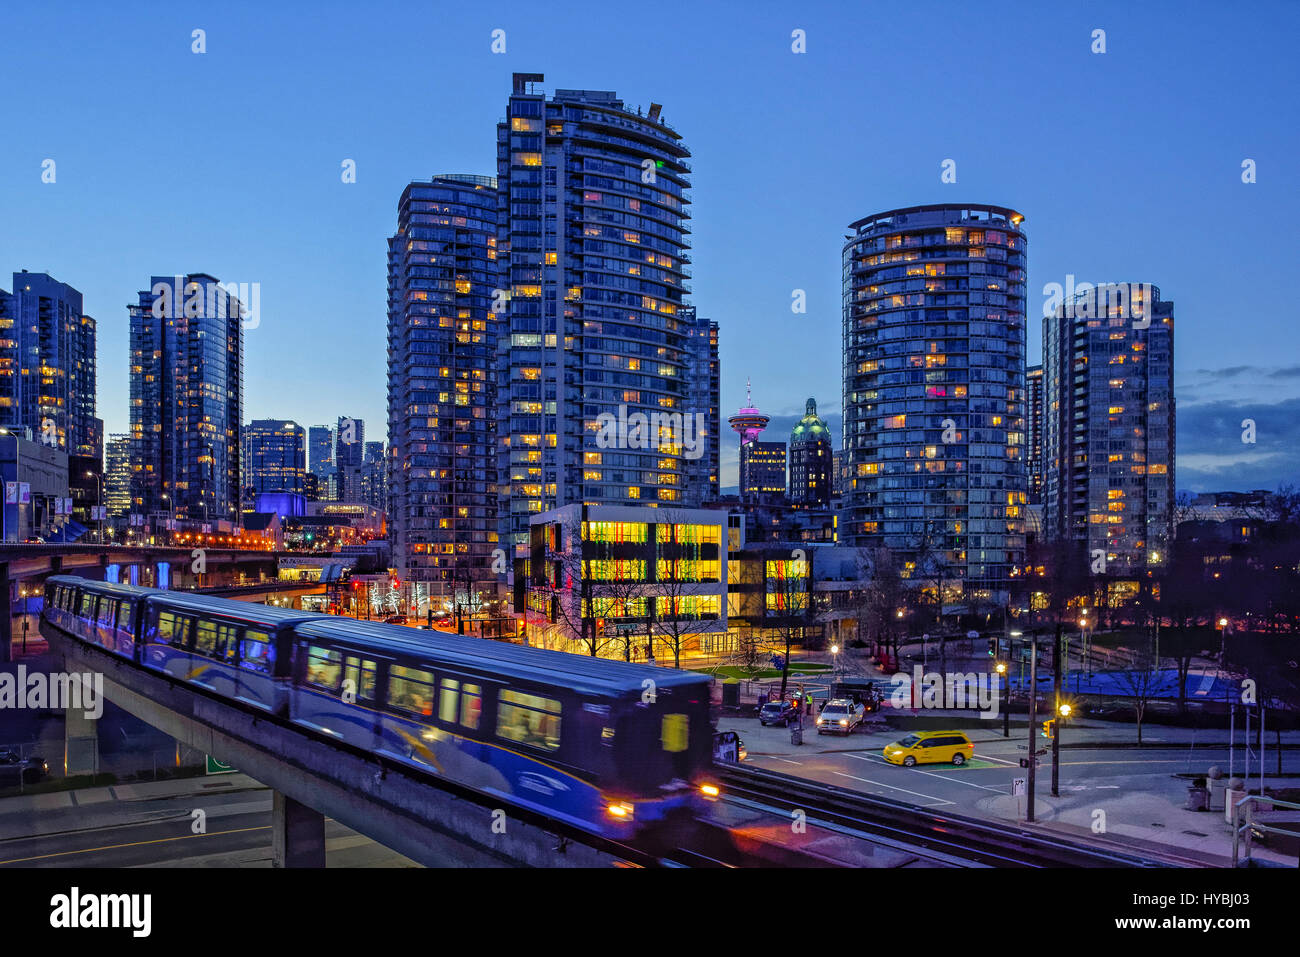 Skytrain rapid transit elevated rail, night time, downtown Vancouver, British Columbia, Canada. - Stock Image